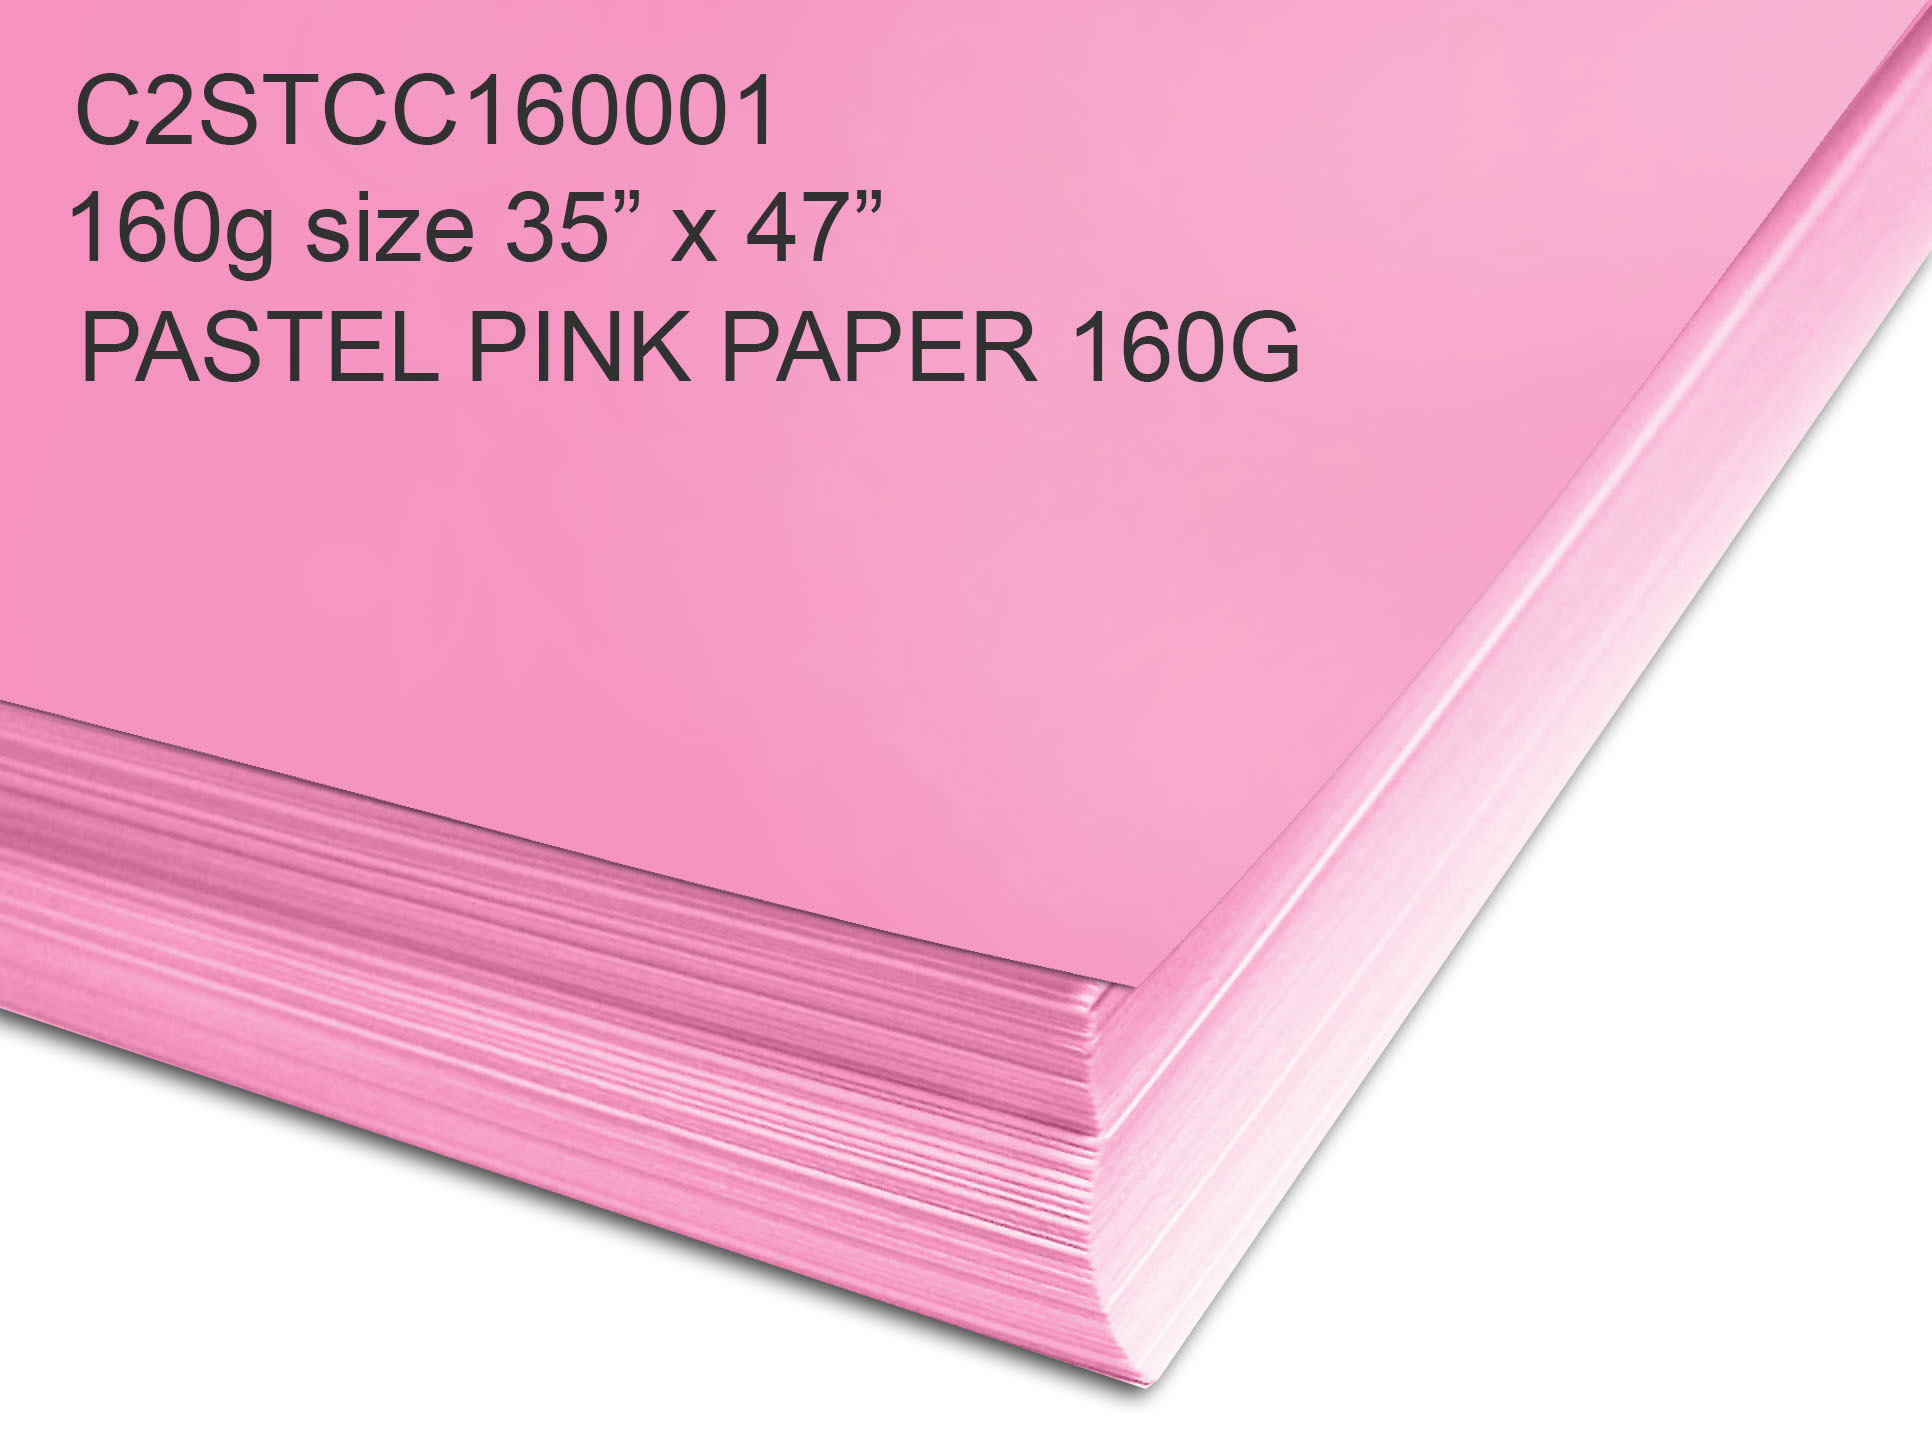 pink paper for flower stcc wood free the fancy paper  .jpg